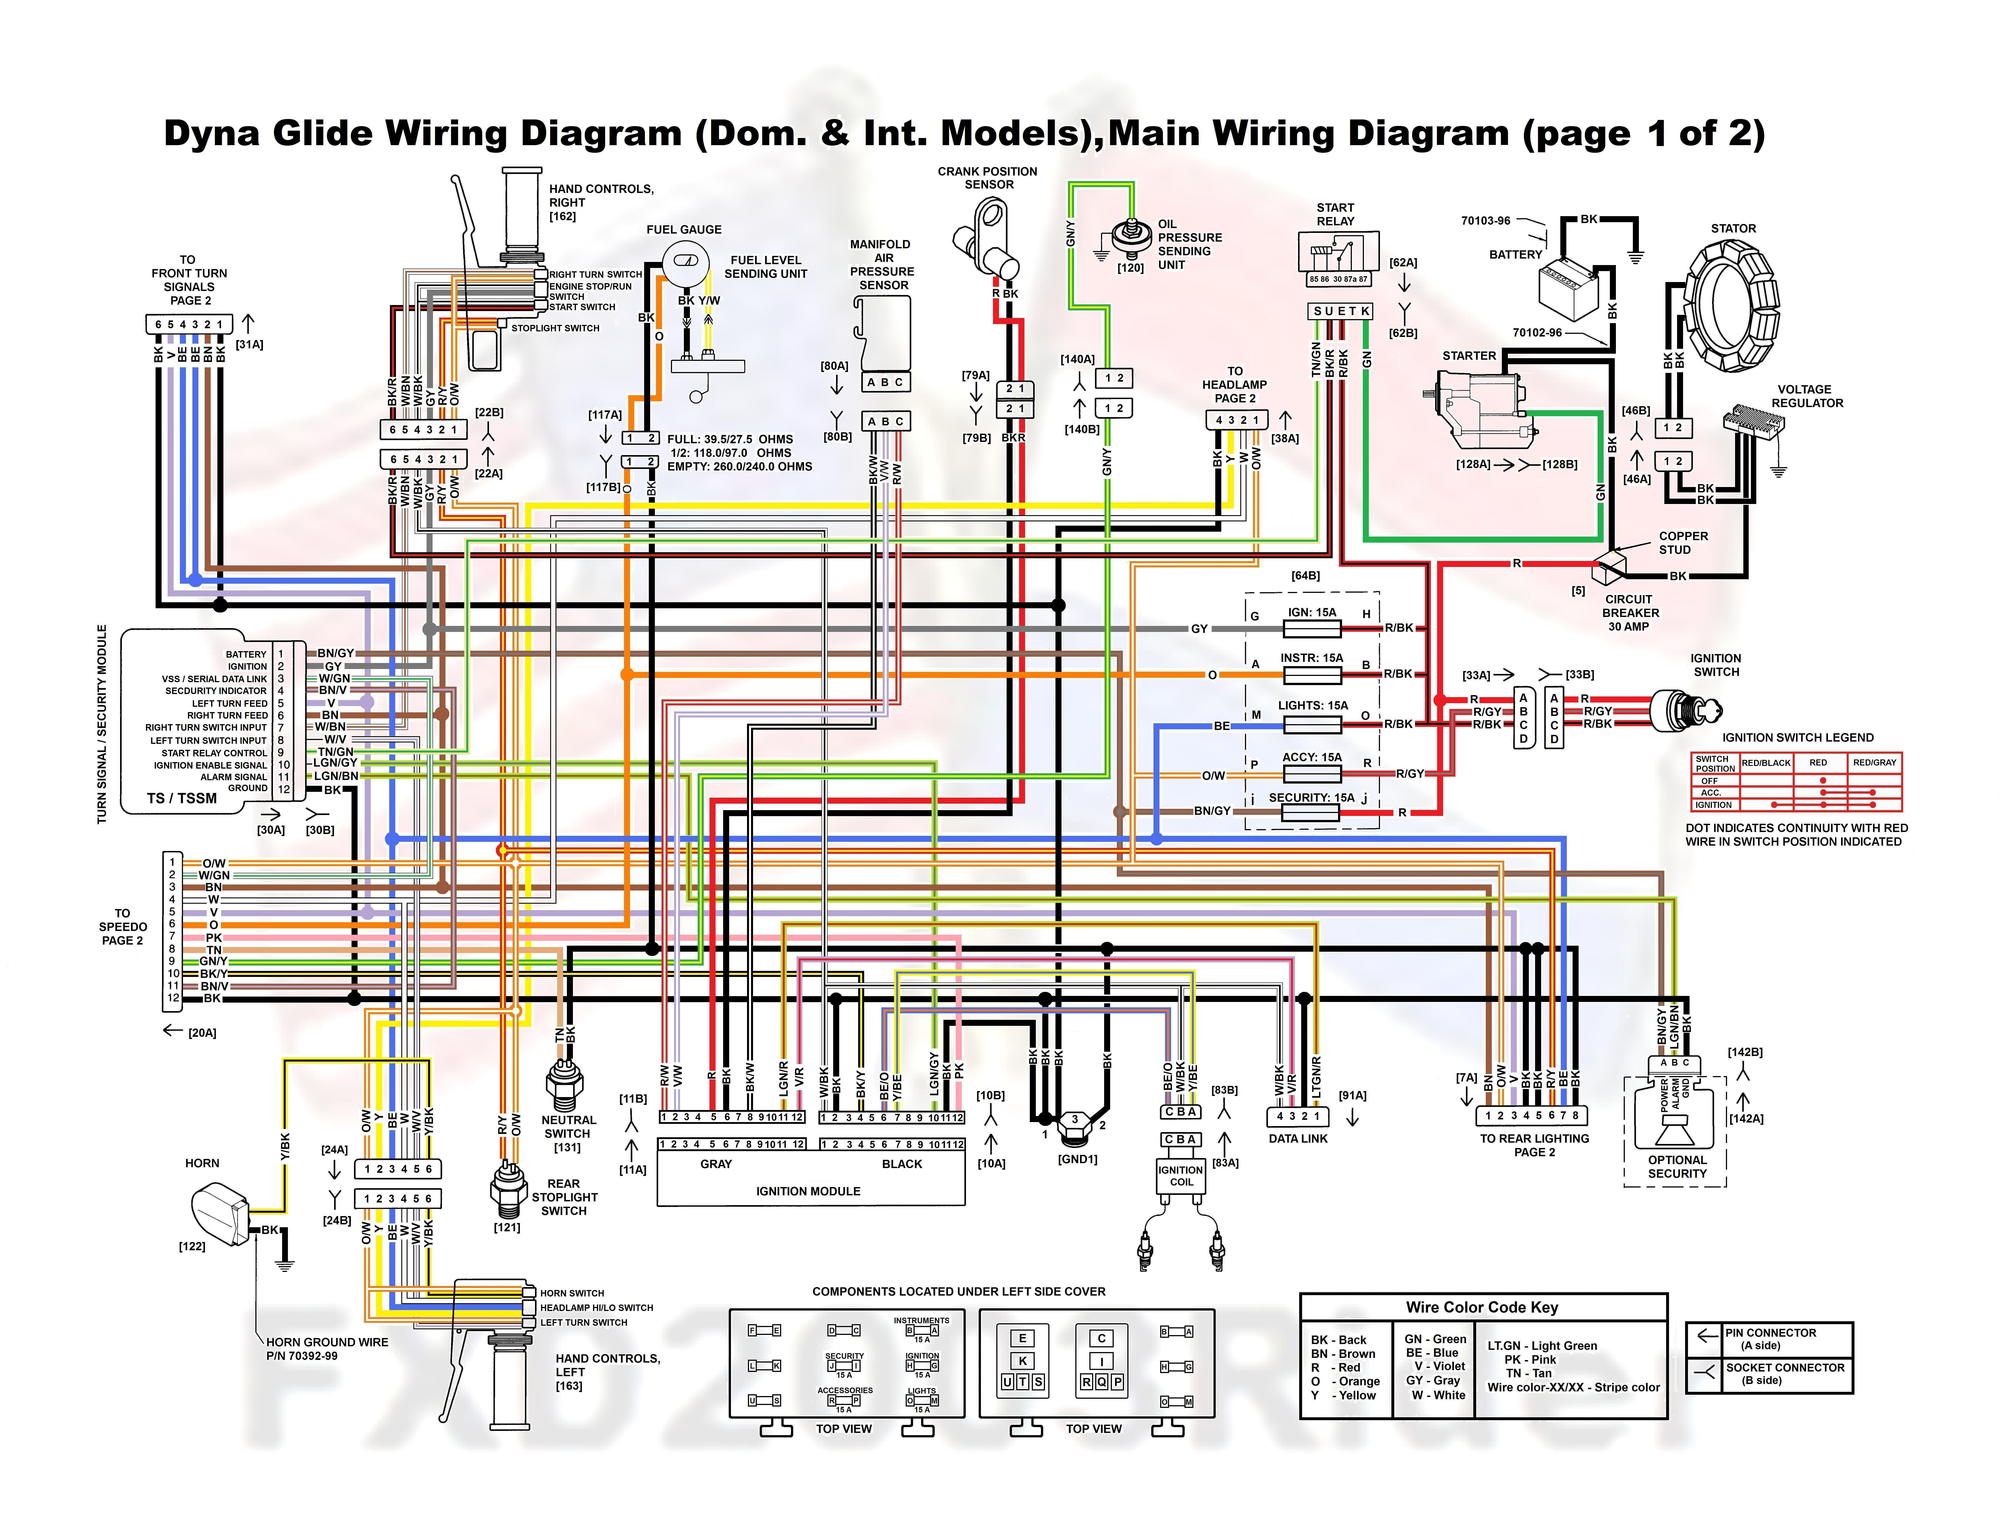 2010 harley davidson wiring diagram fuse question - harley davidson forums